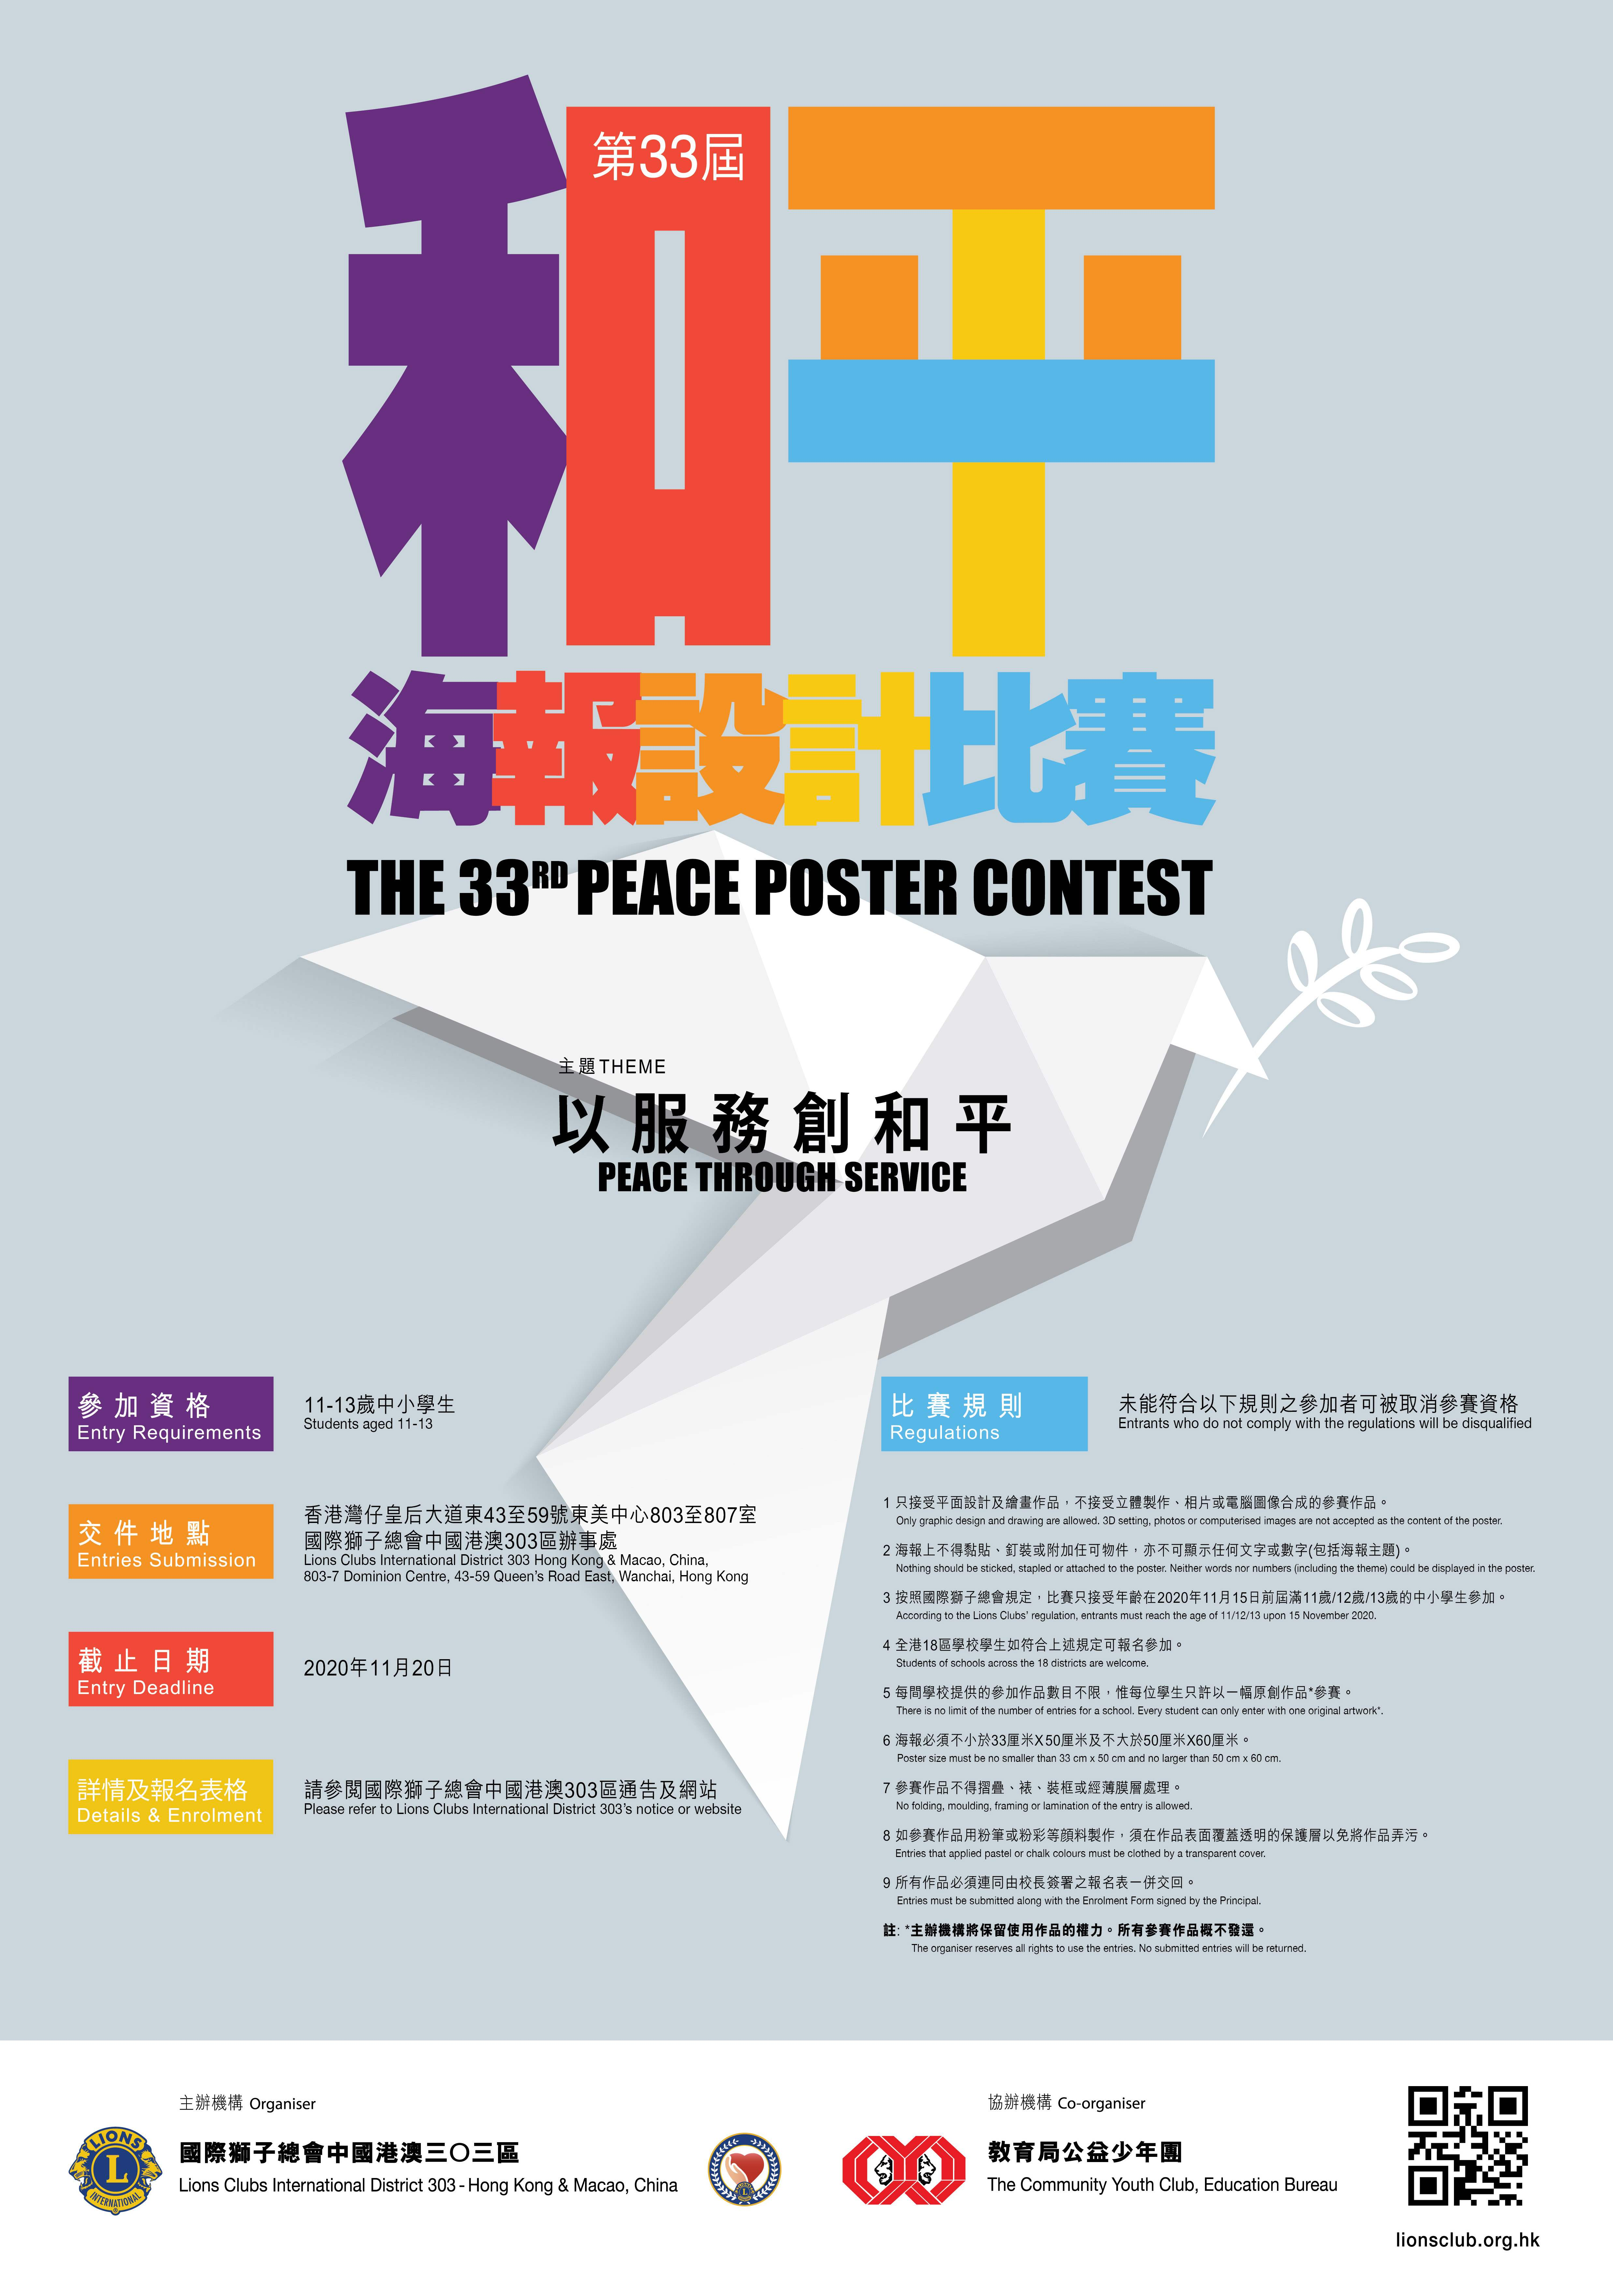 The 33rd Peace Poster Contest.jpg (1.29 MB)